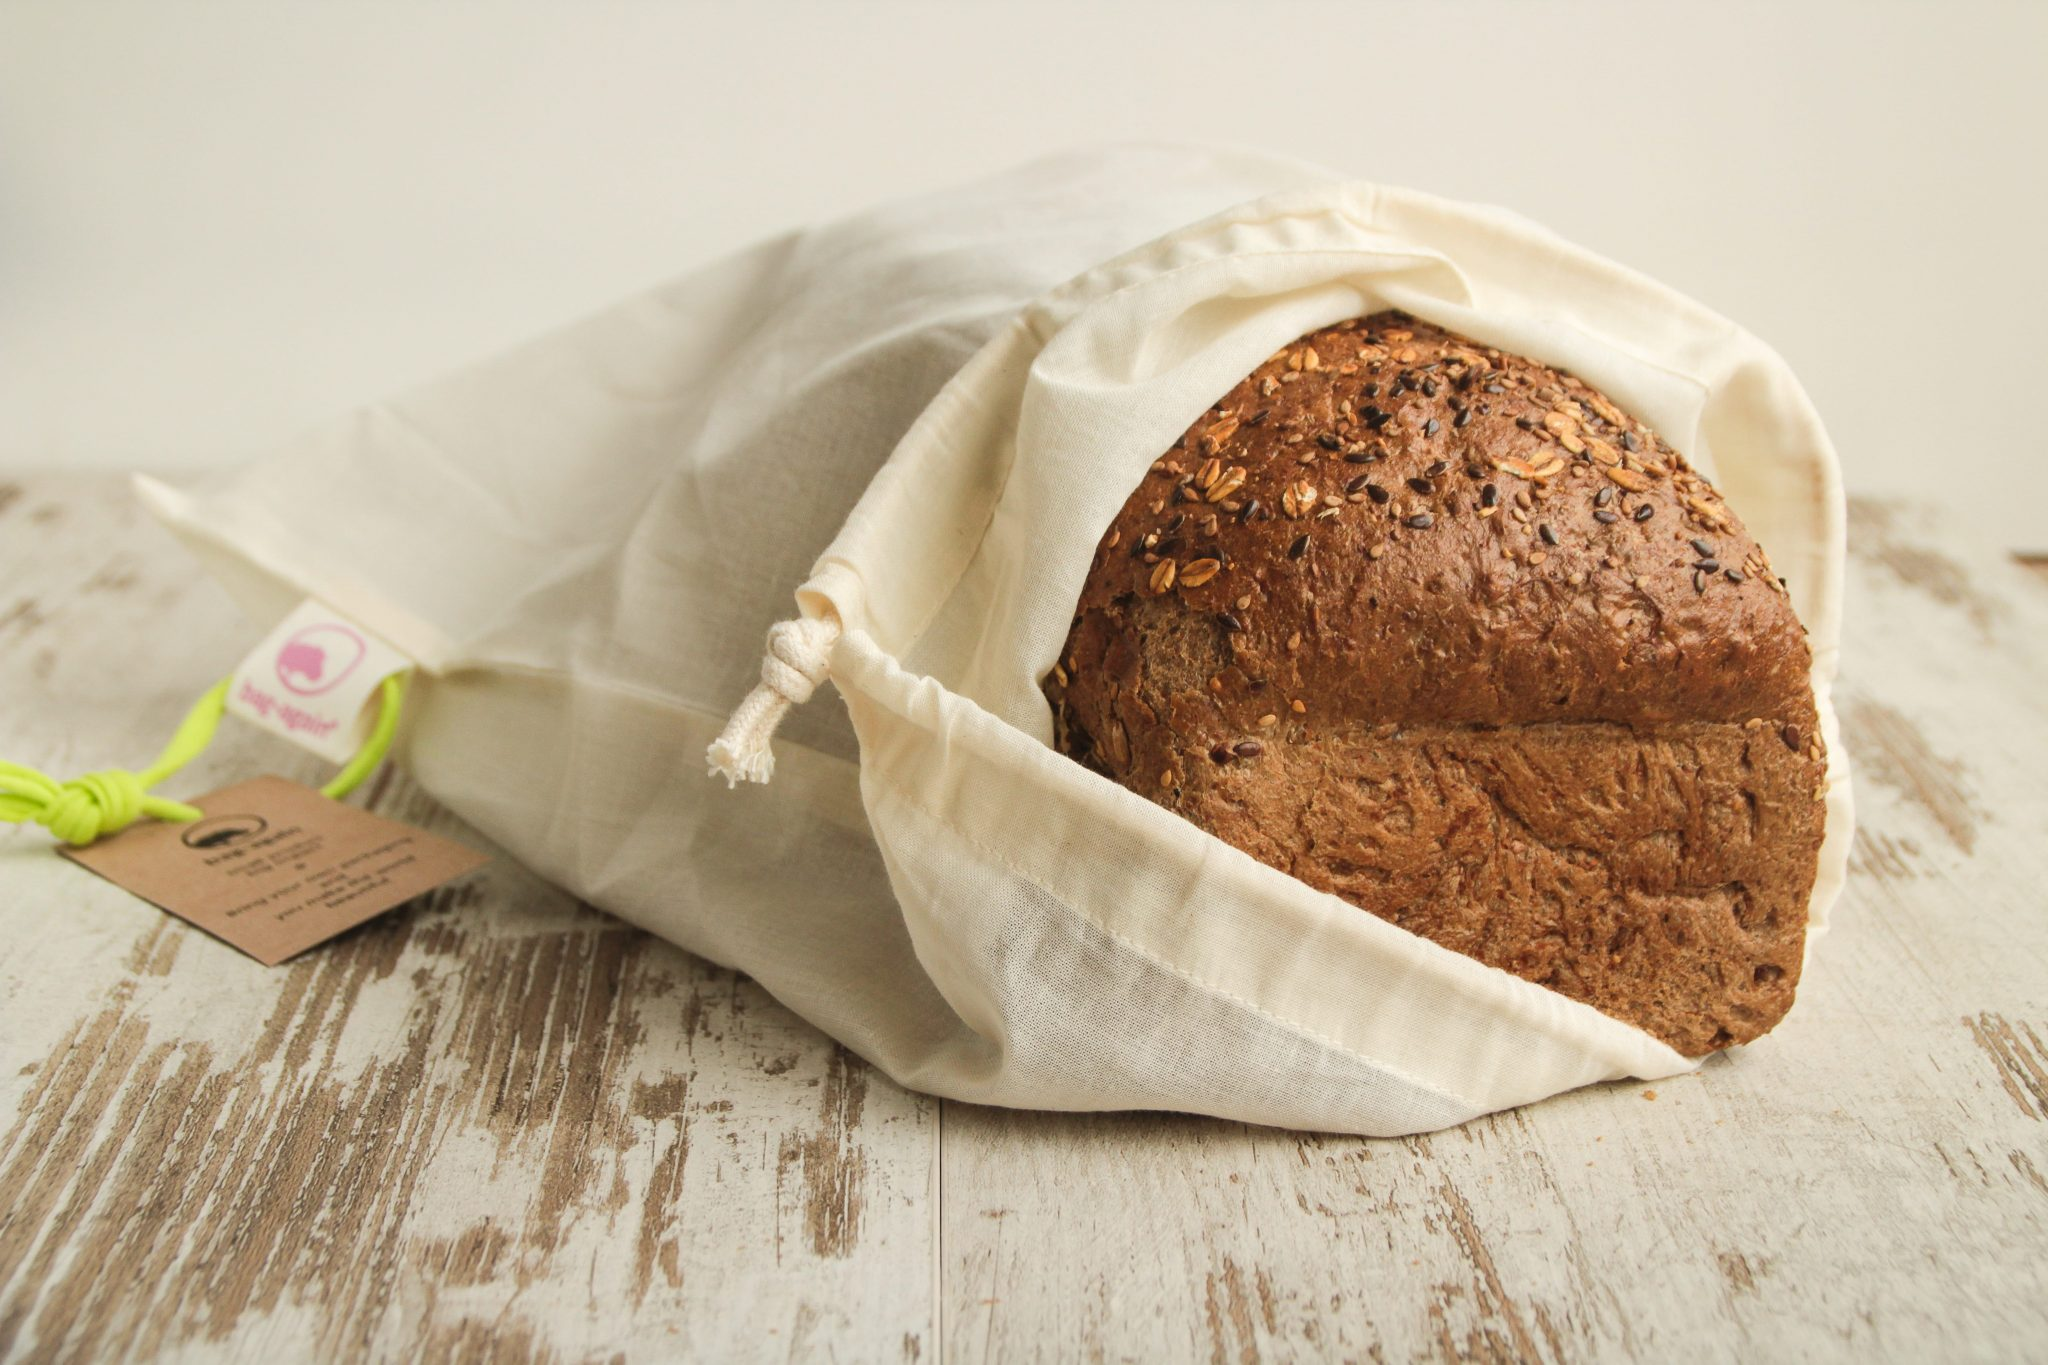 broodzak S onbedrukt, breadbag, organic cotton, biologisch katoen, bag-again, zero waste shop, webshop